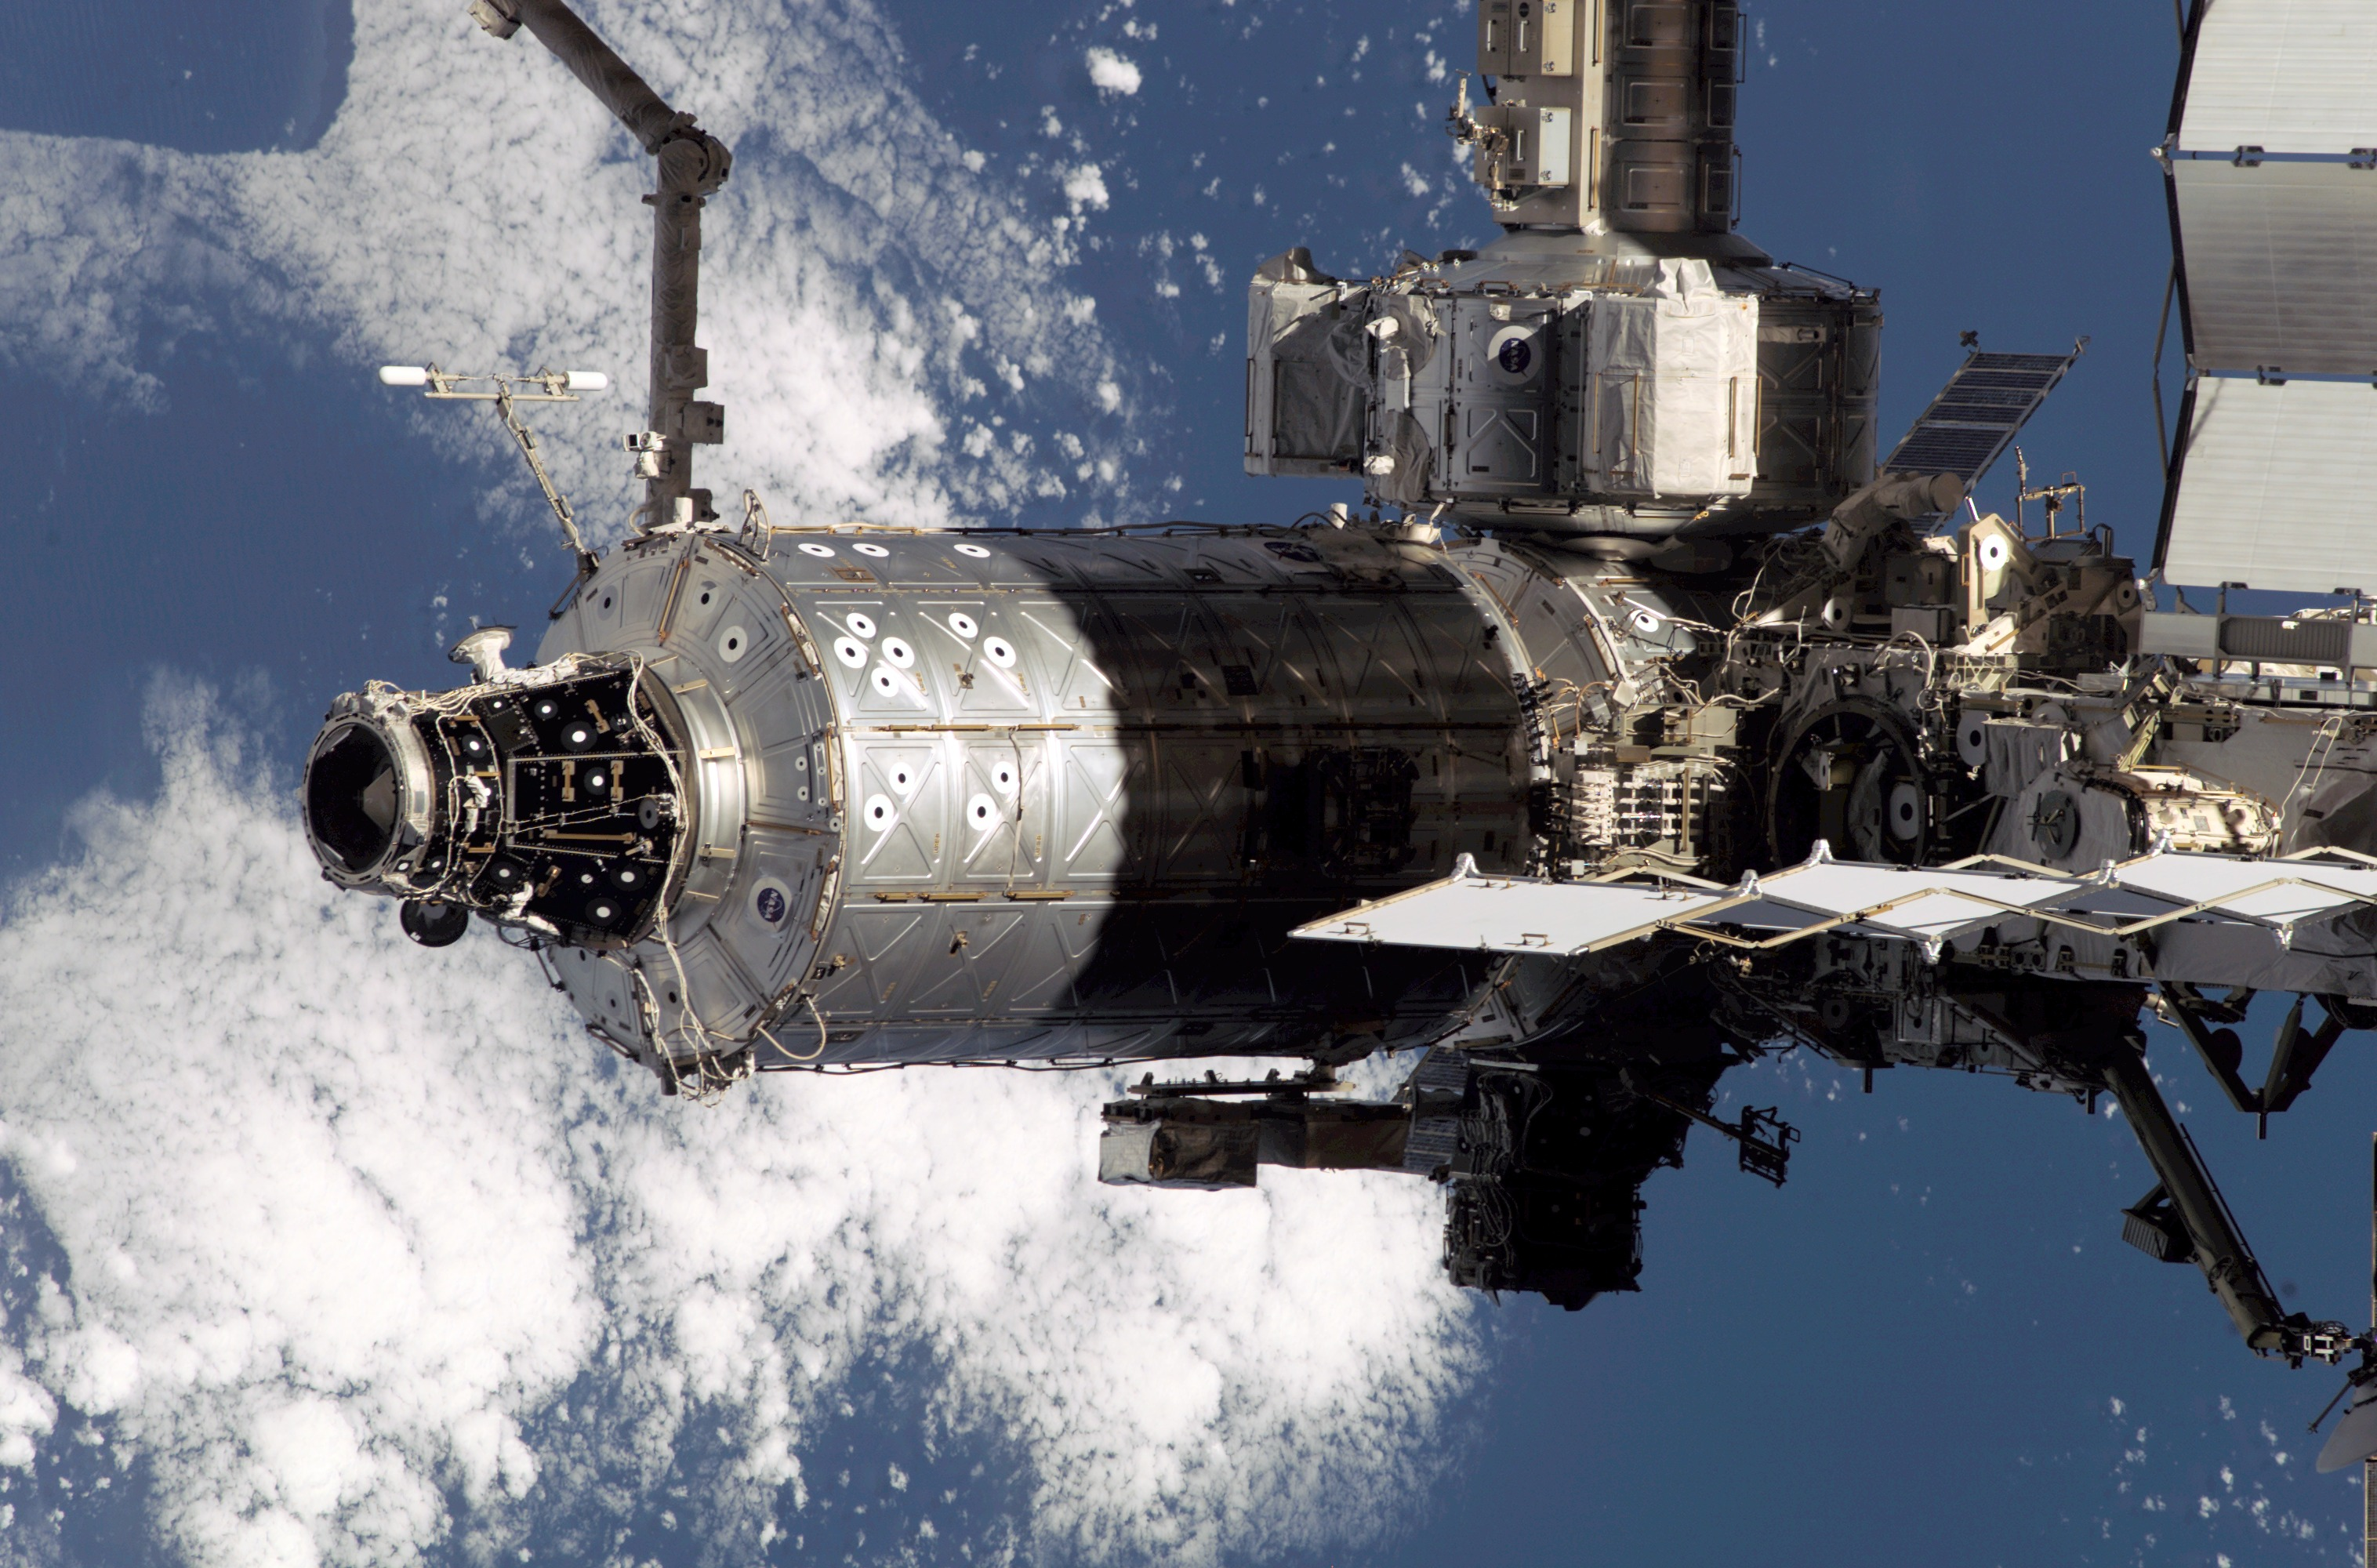 space shuttle live cam - photo #16